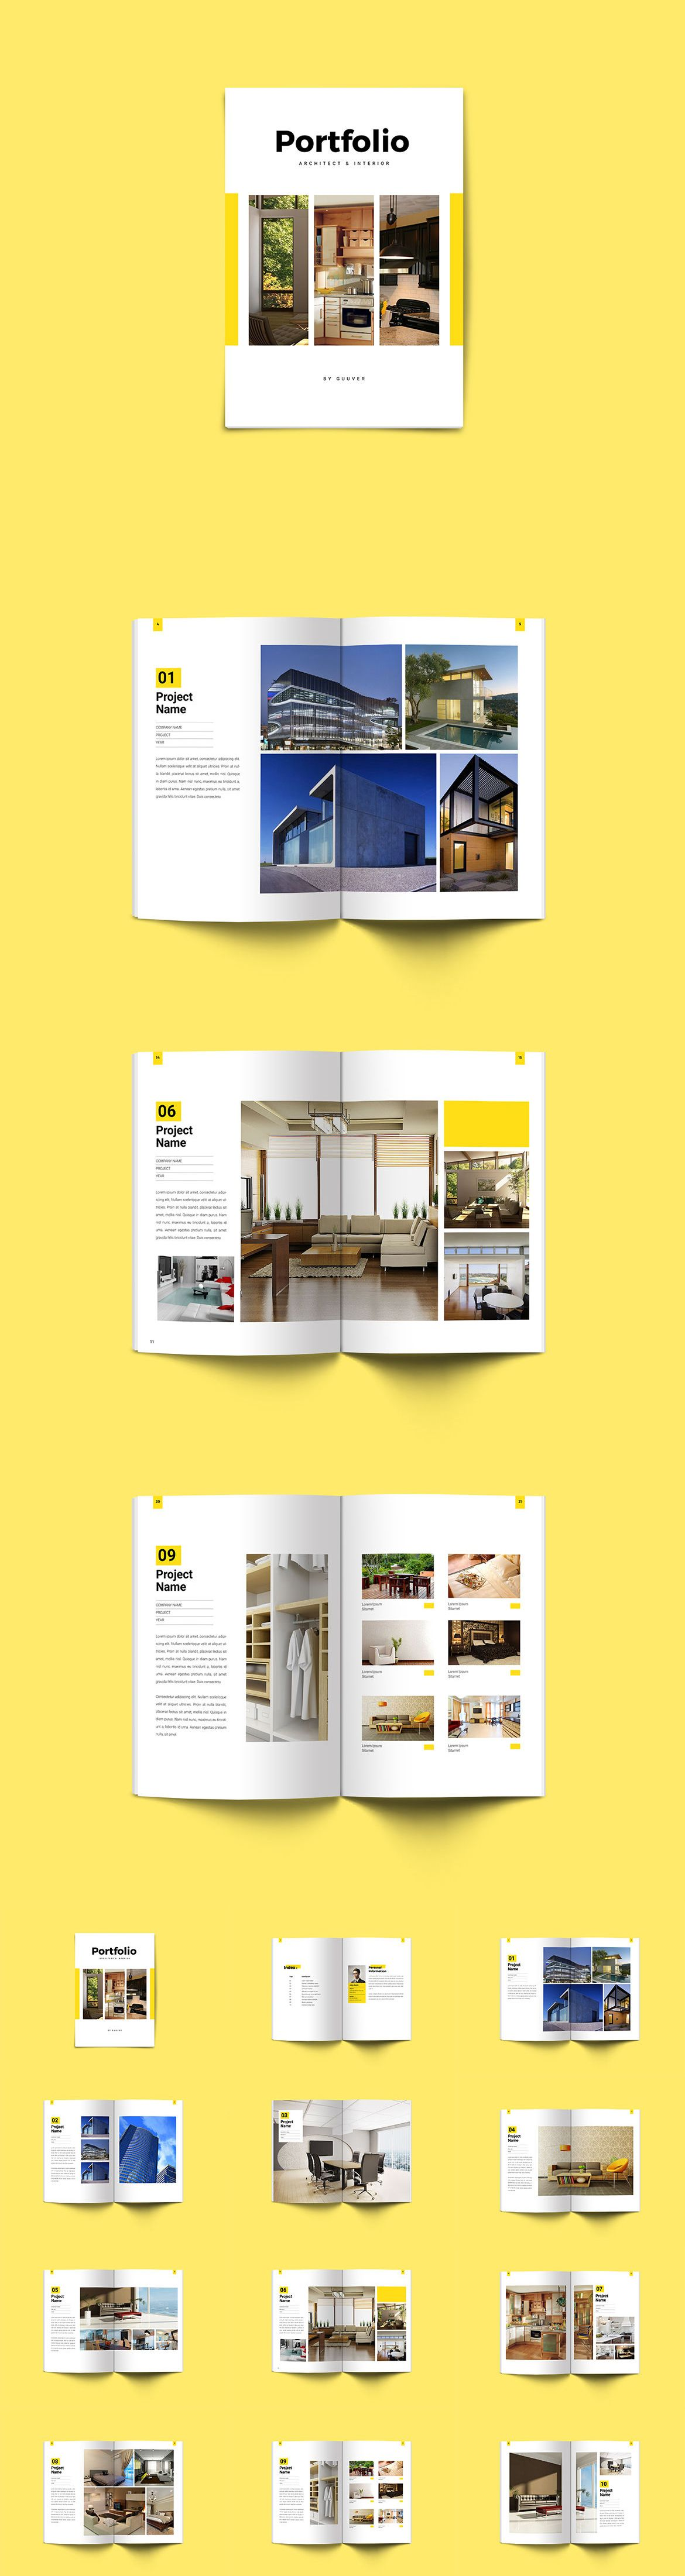 Minimal Interior Architecture Portfolio Brochure Template InDesign INDD